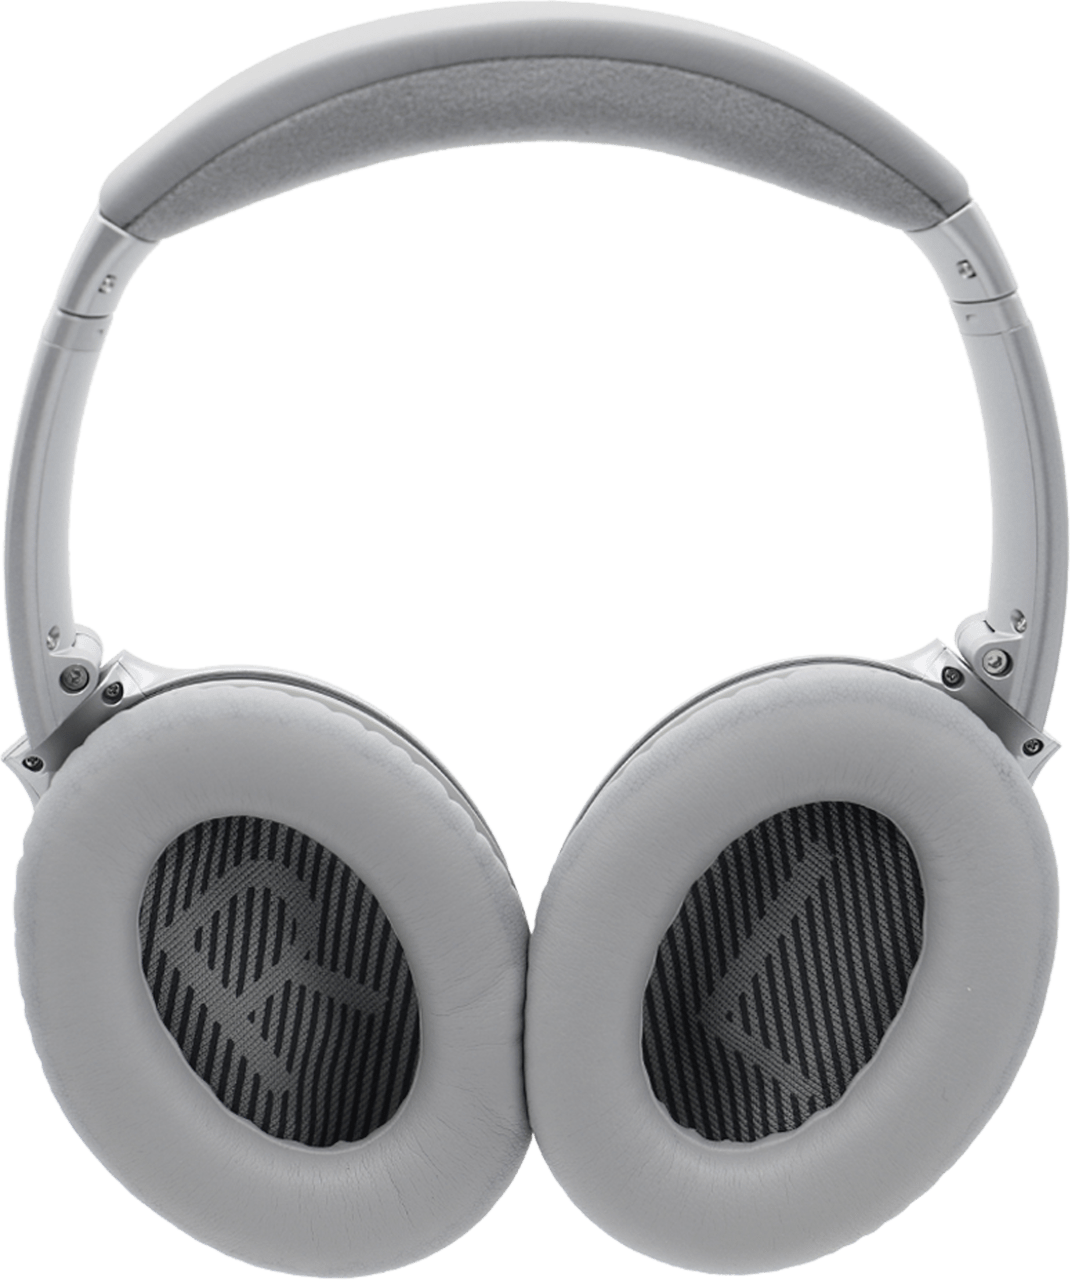 Silver Bose Quietcomfort 35 II Noise-cancelling Over-ear Bluetooth Headphones.4